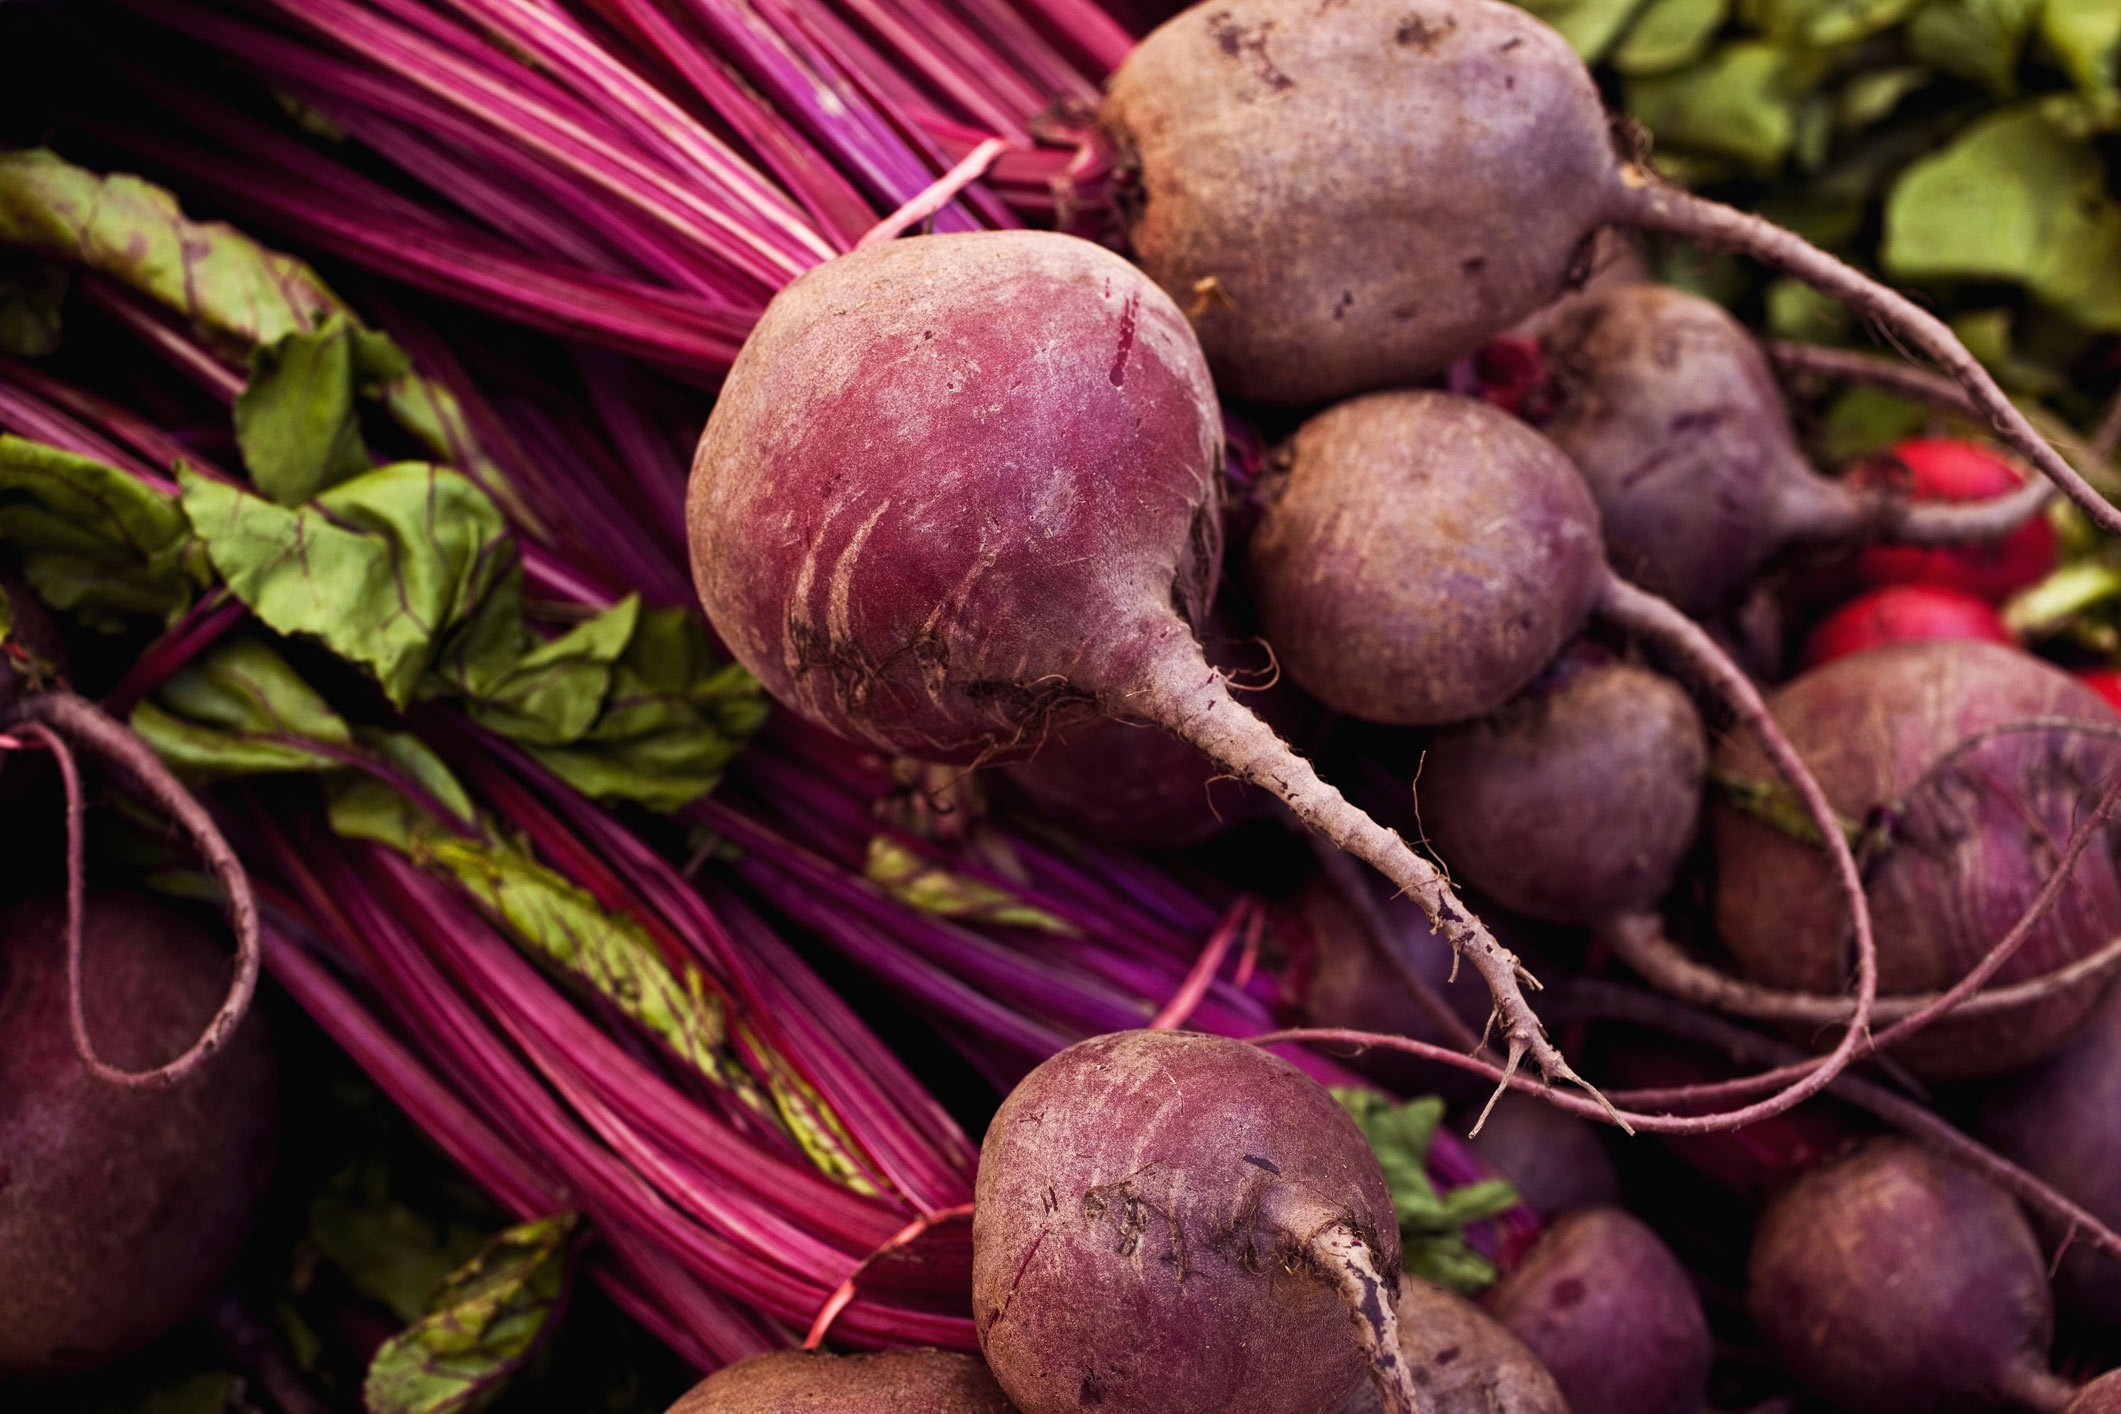 Top detoxifying foods: Beets